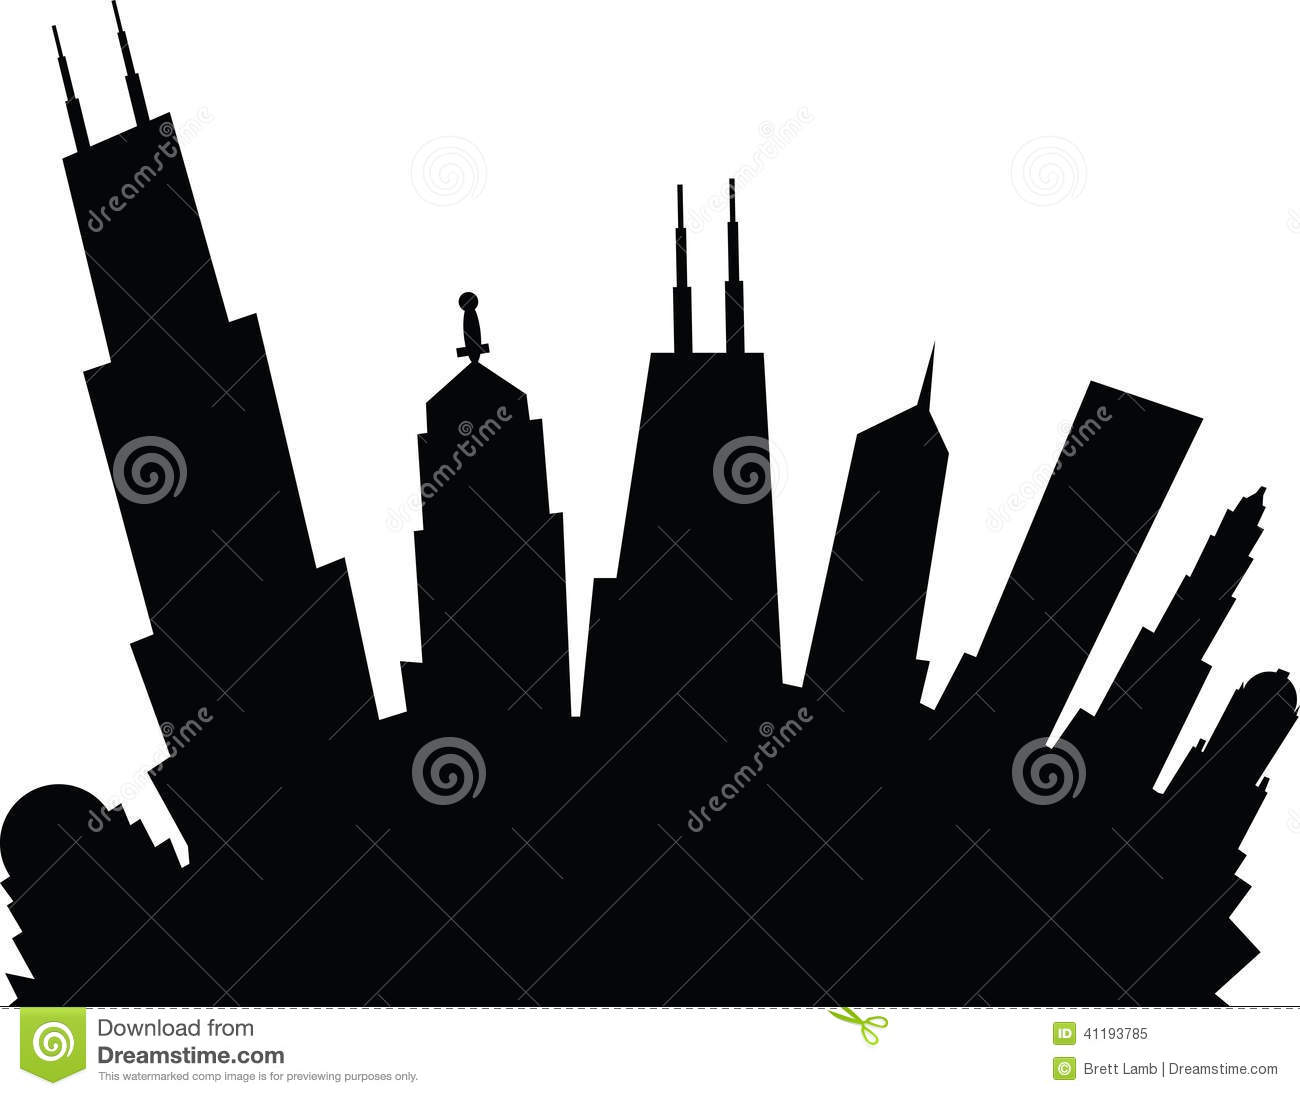 Chicago Skyline Silhouette Vector Art Free - image of chicago skyline ...